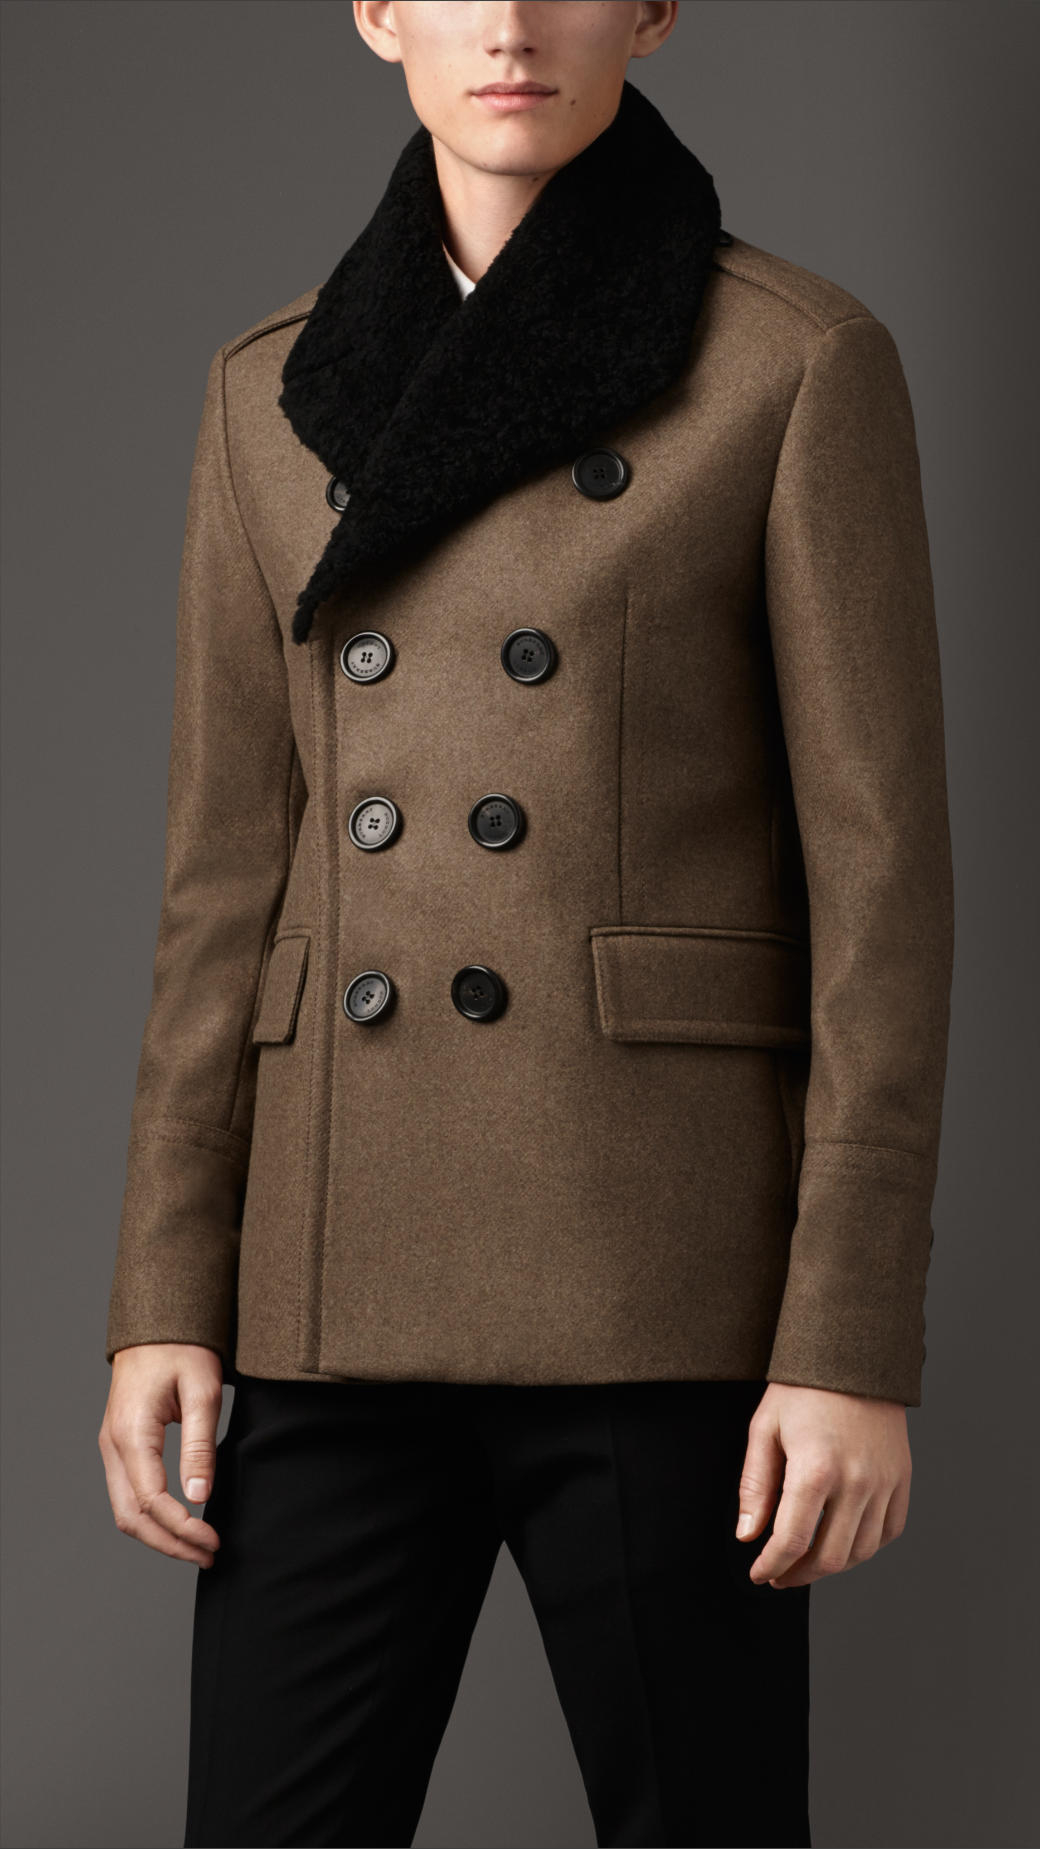 Burberry Shearling Topcollar Wool Blend Pea Coat in Green for Men